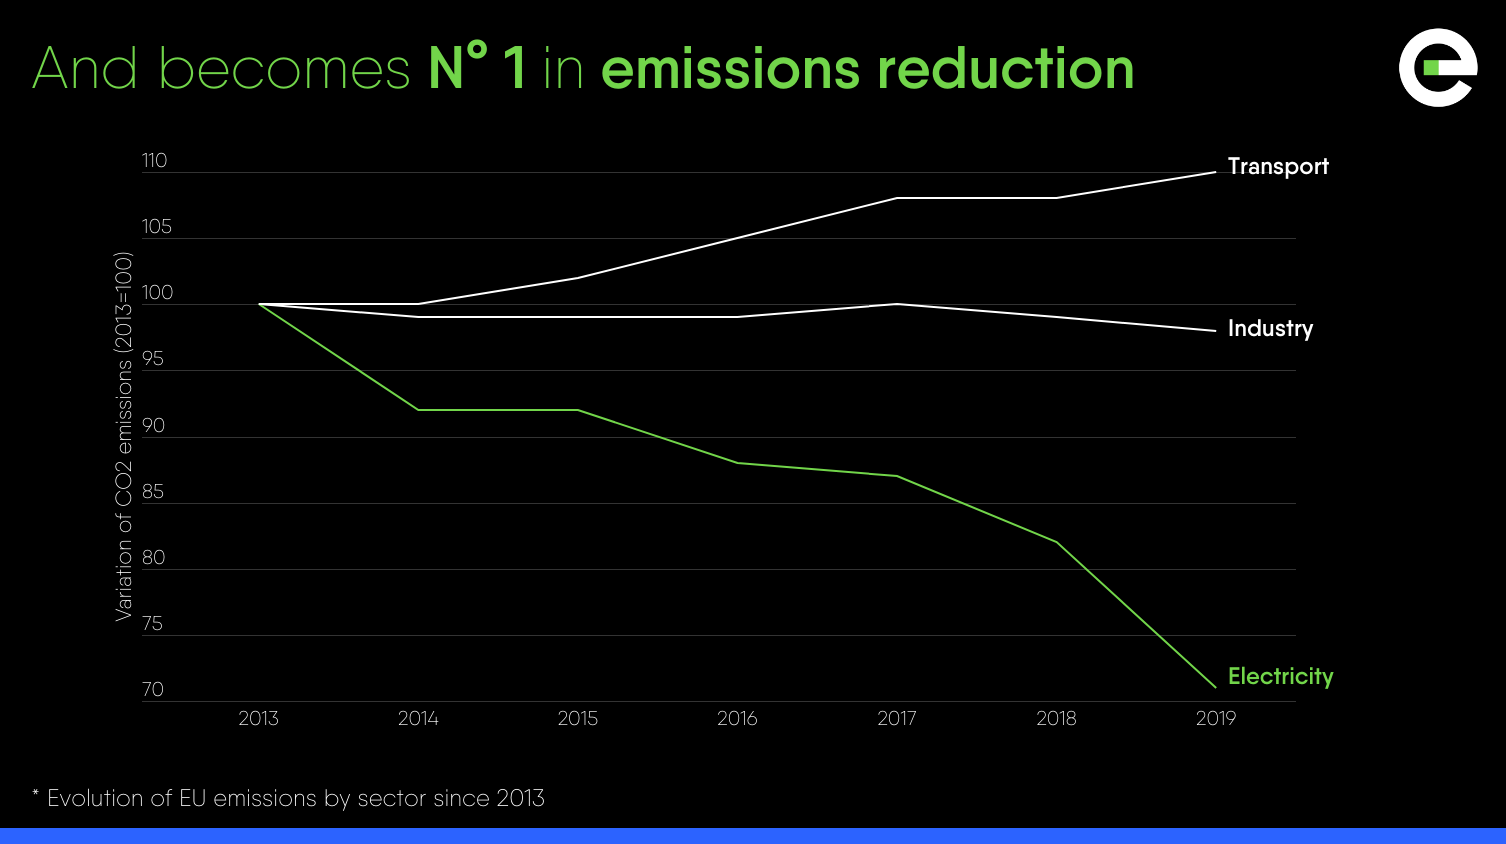 Power Barometer 2020: and becomes n°1 in emissions reduction